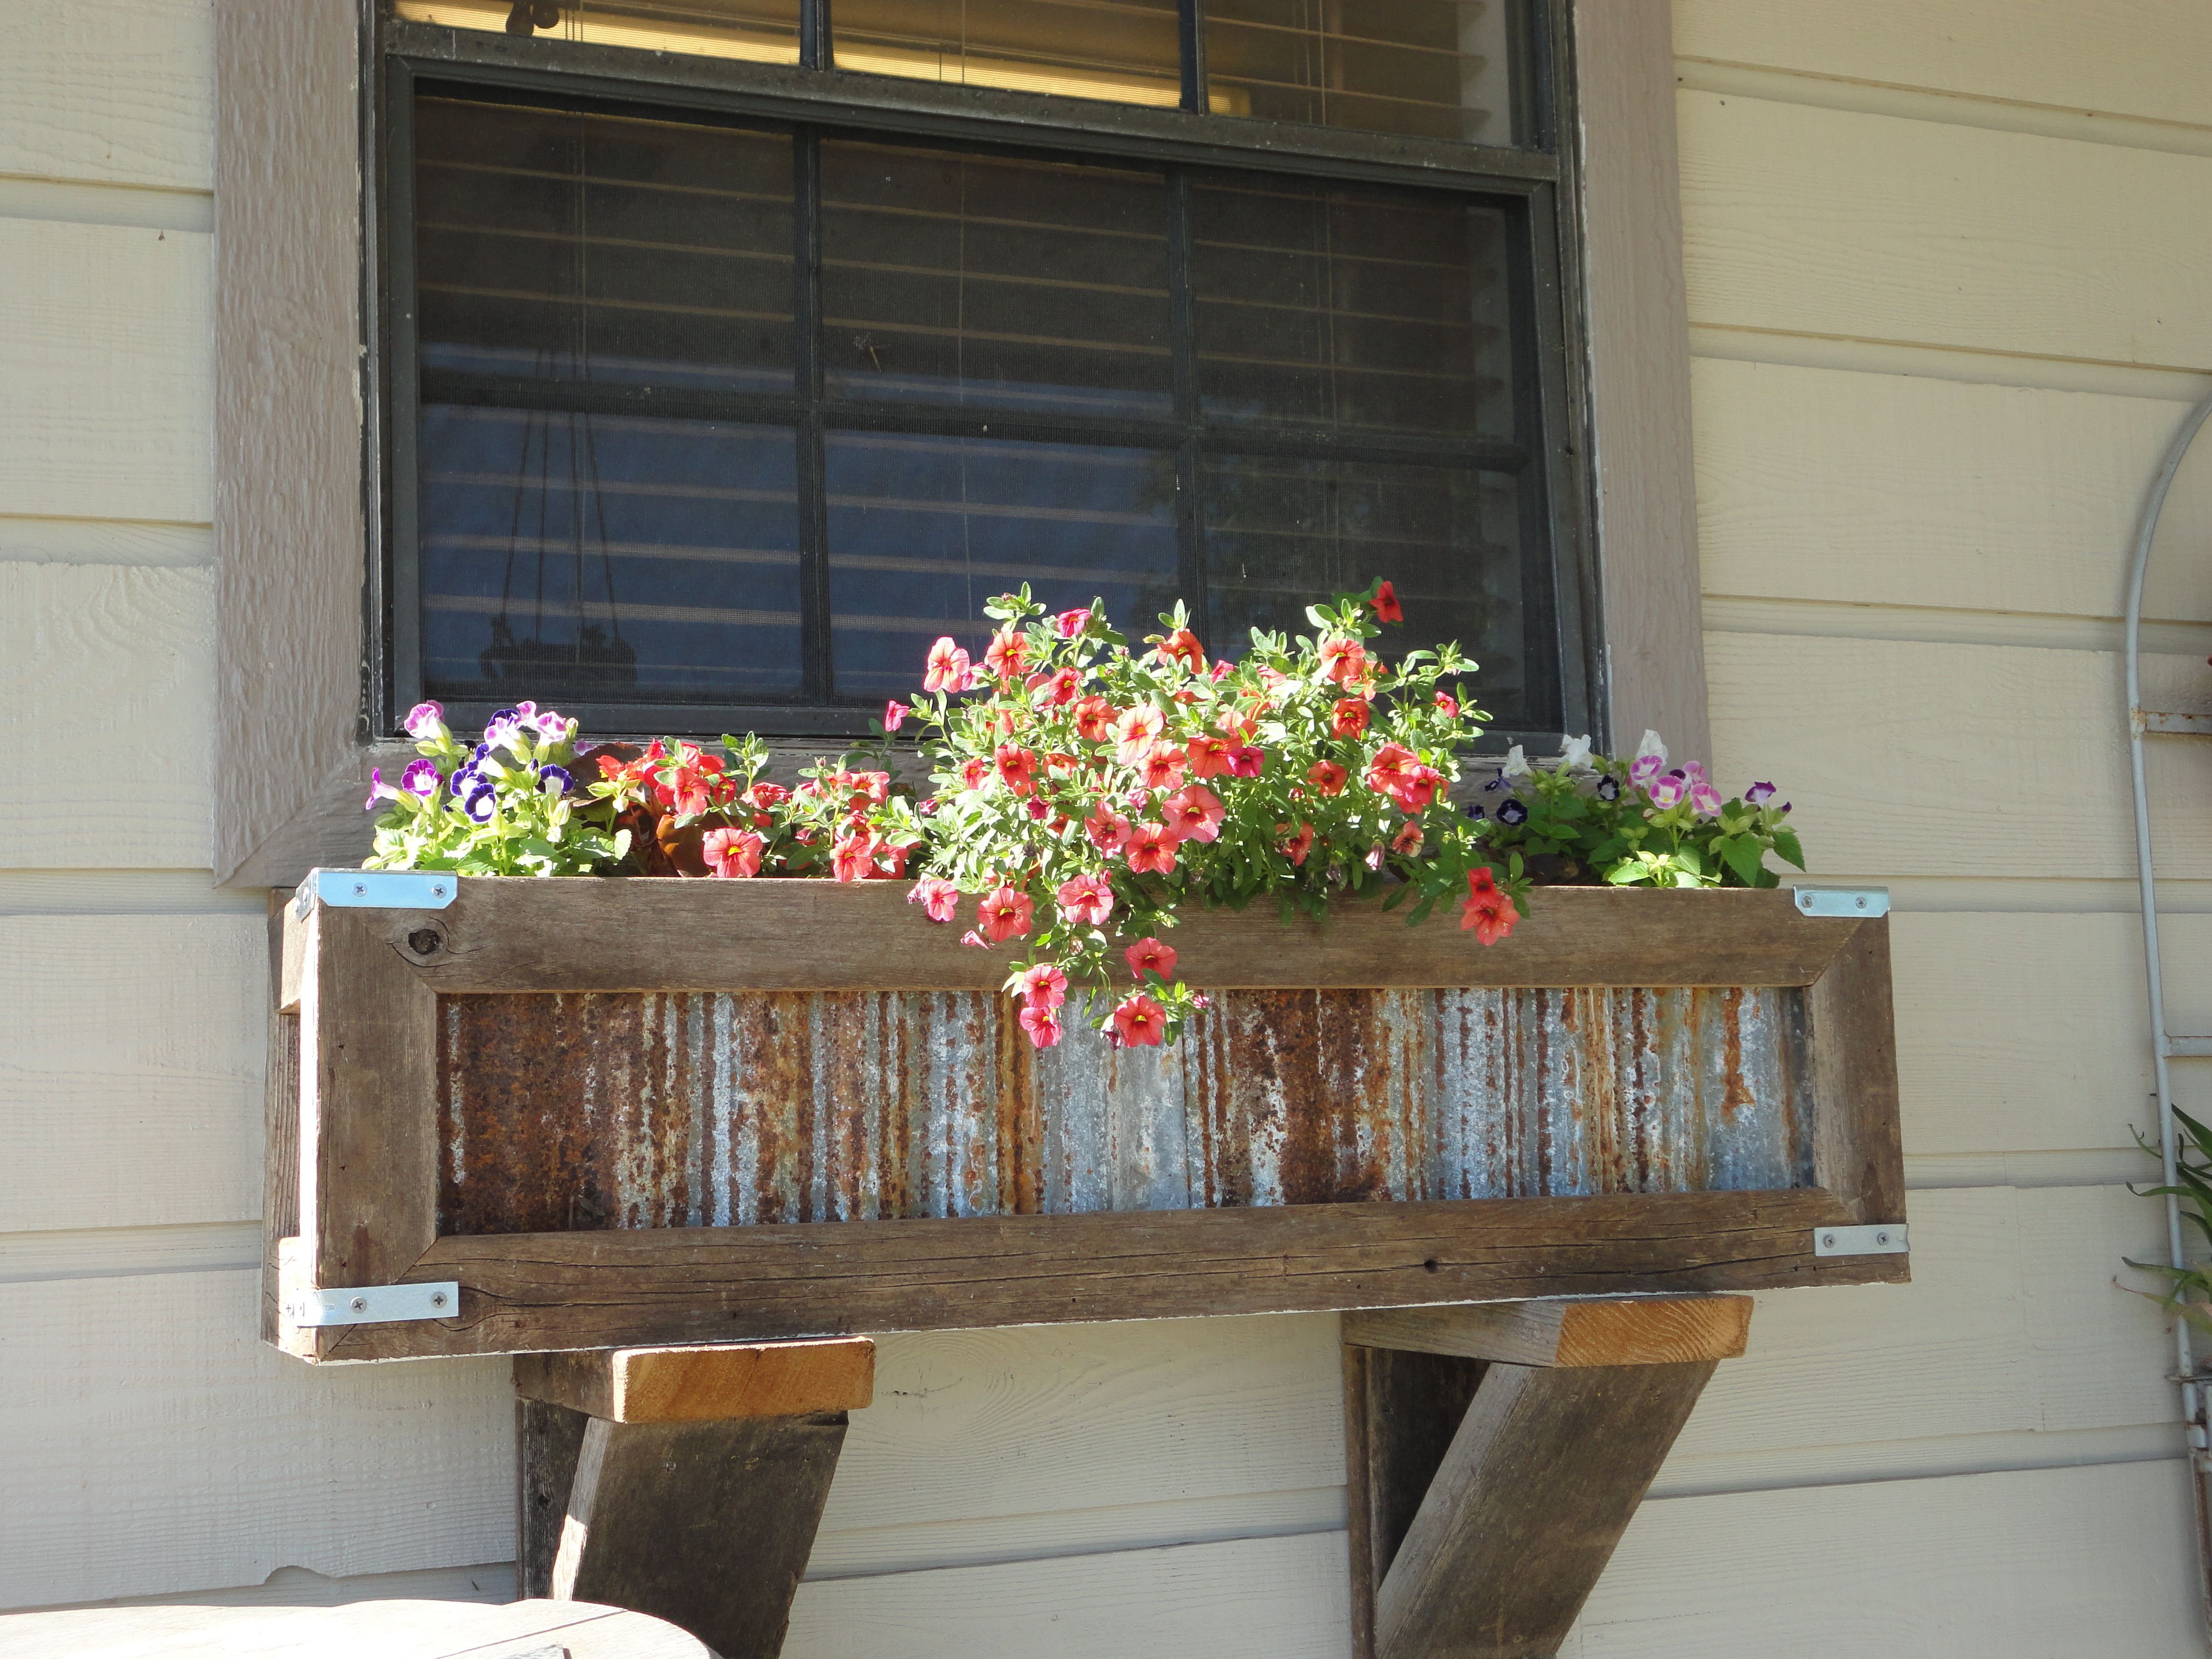 Handcrafted Rustic Window Box Planter For Kitchen Window Crafted